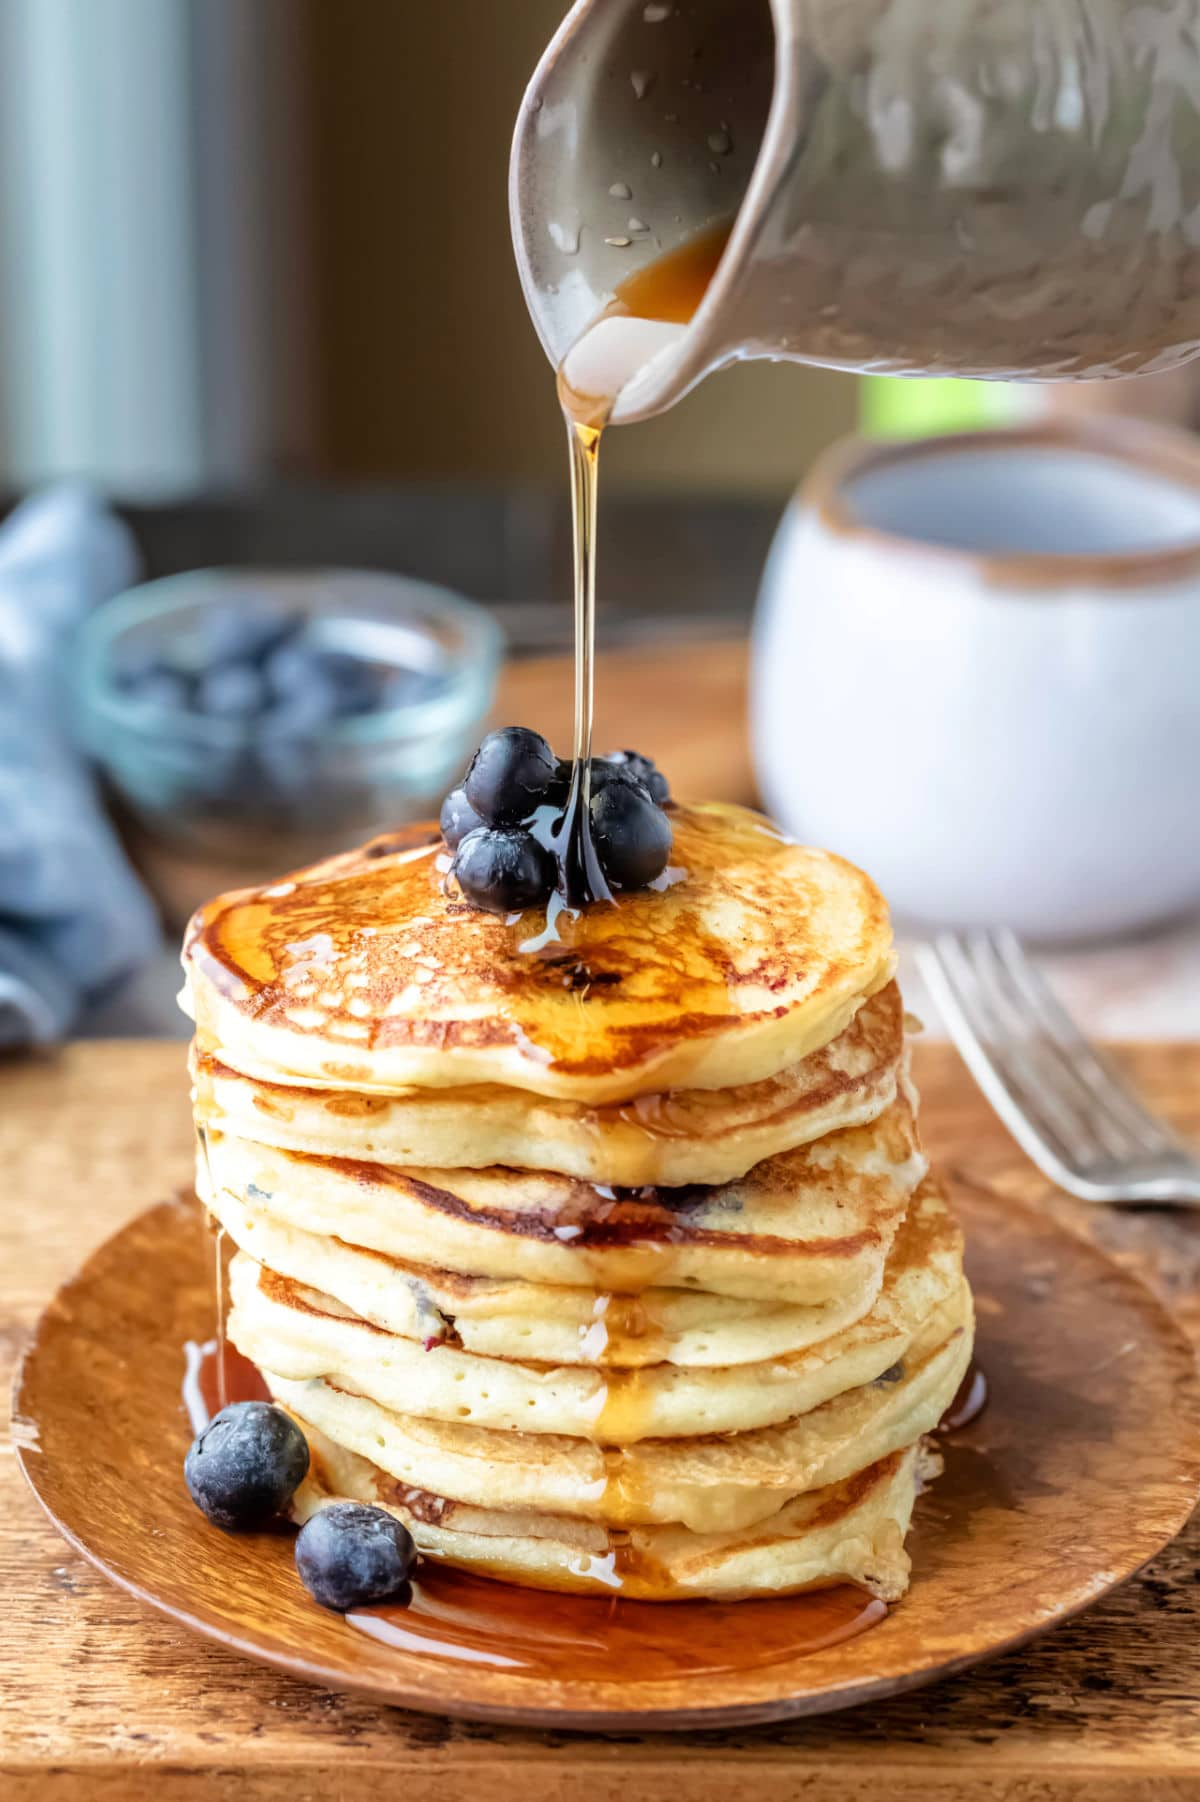 Maple syrup pouring onto a stack of blueberry lemon ricotta pancakes